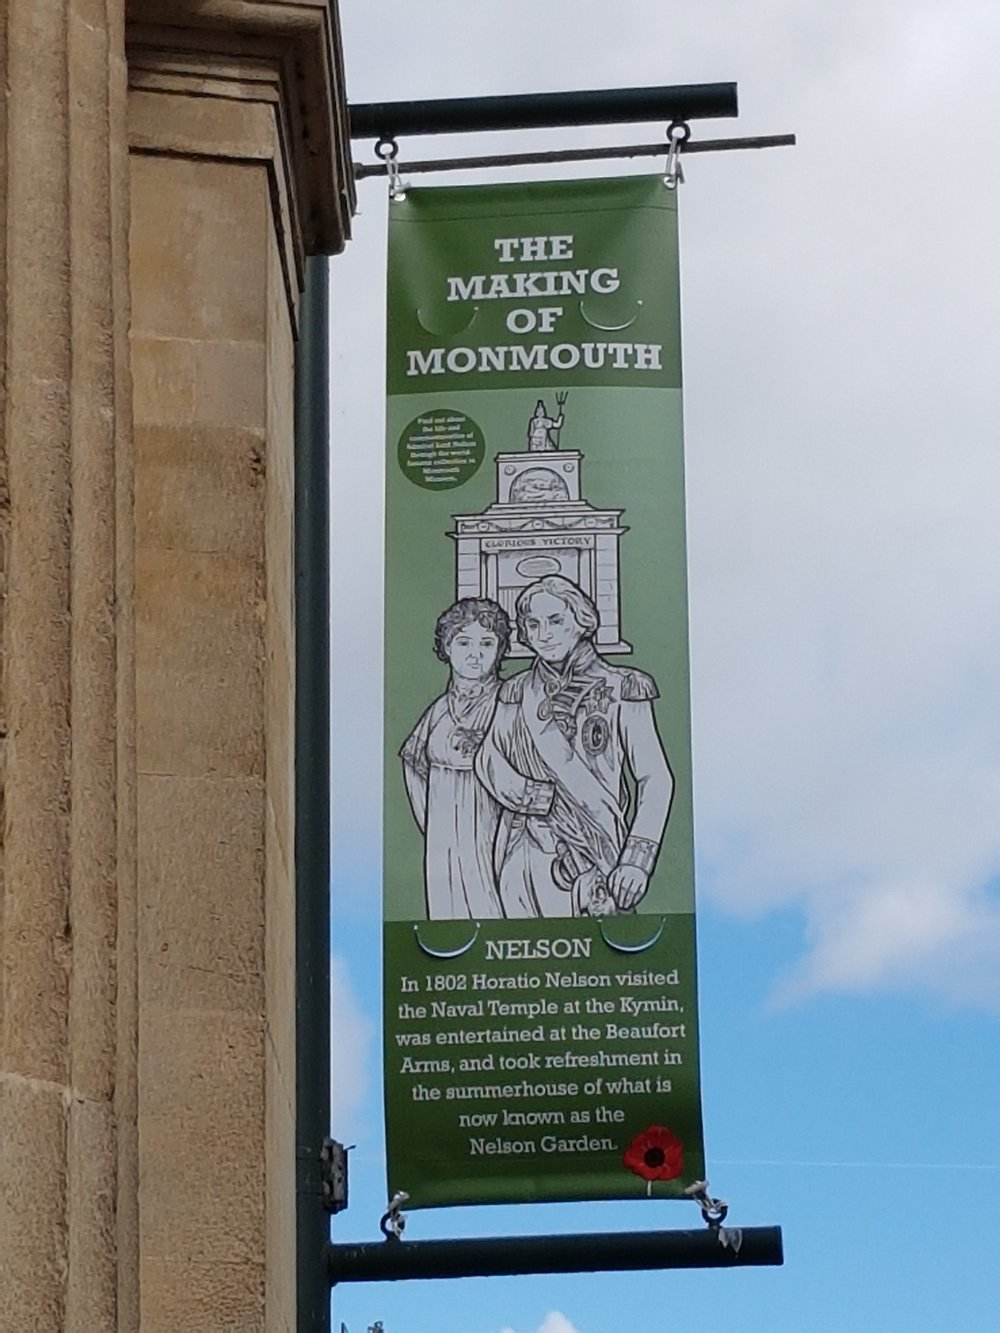 Nelson and Emma Hamilton visited Monmouth in 1802